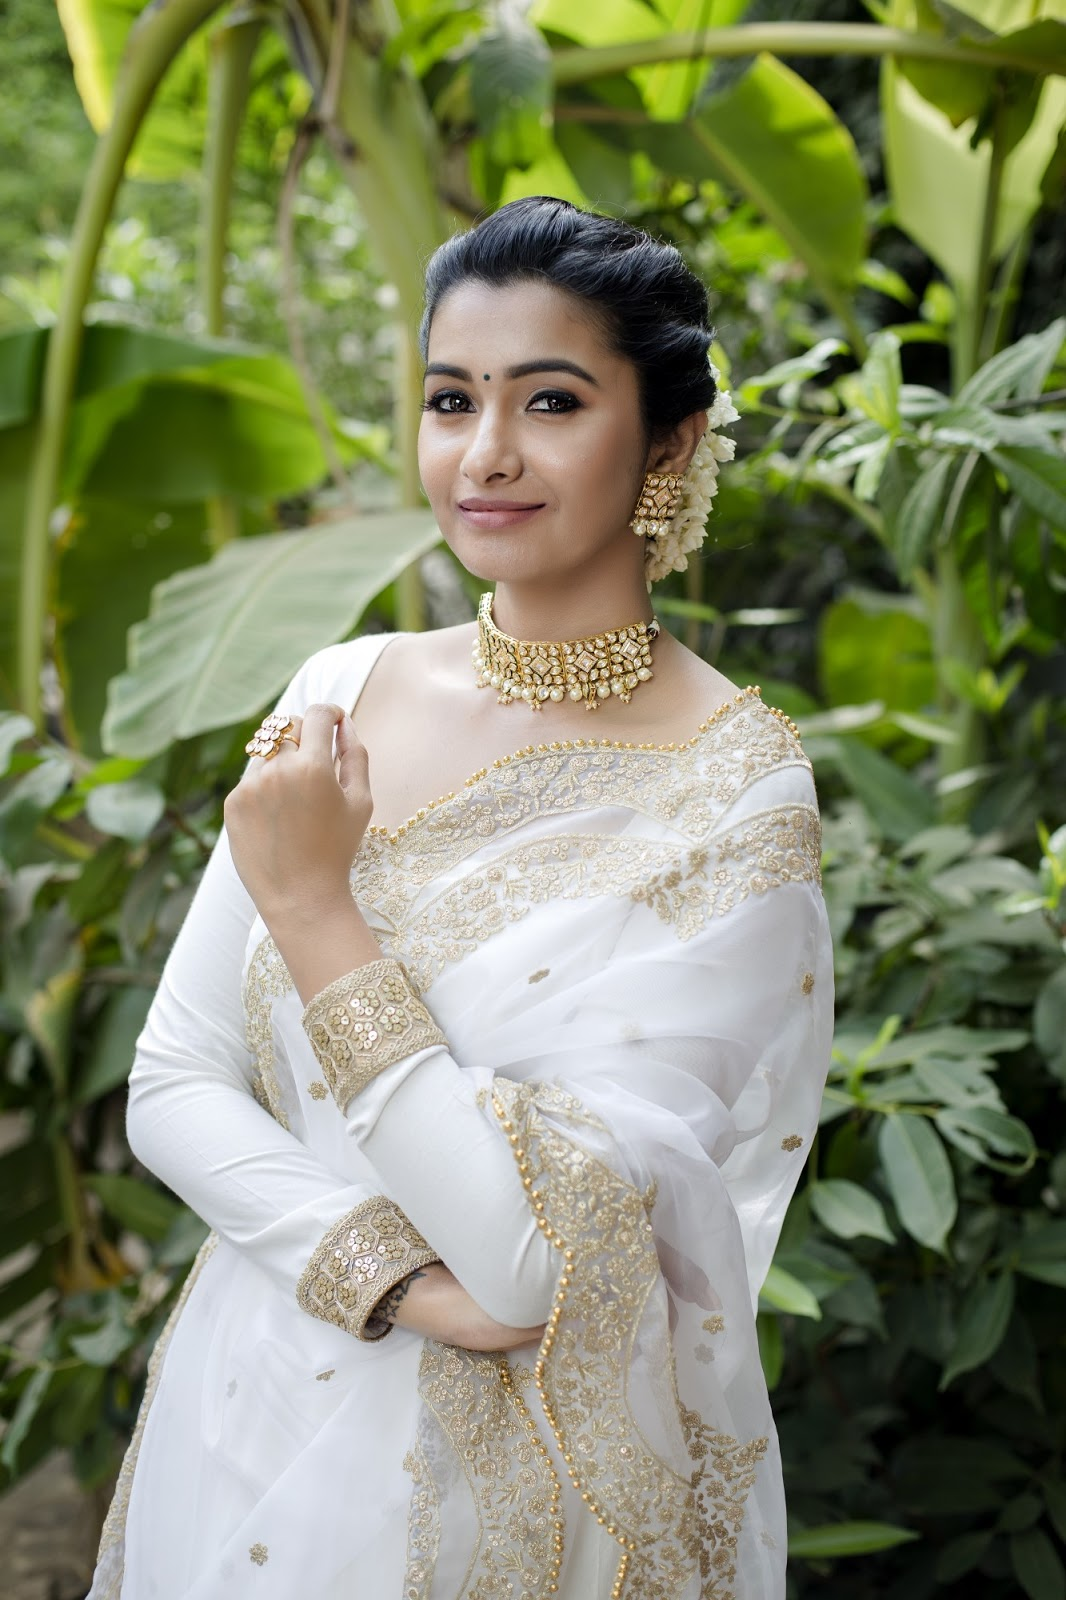 Indian 2 Movie Actress Priya Bhavani Shankar Latest Photoshoot Stills